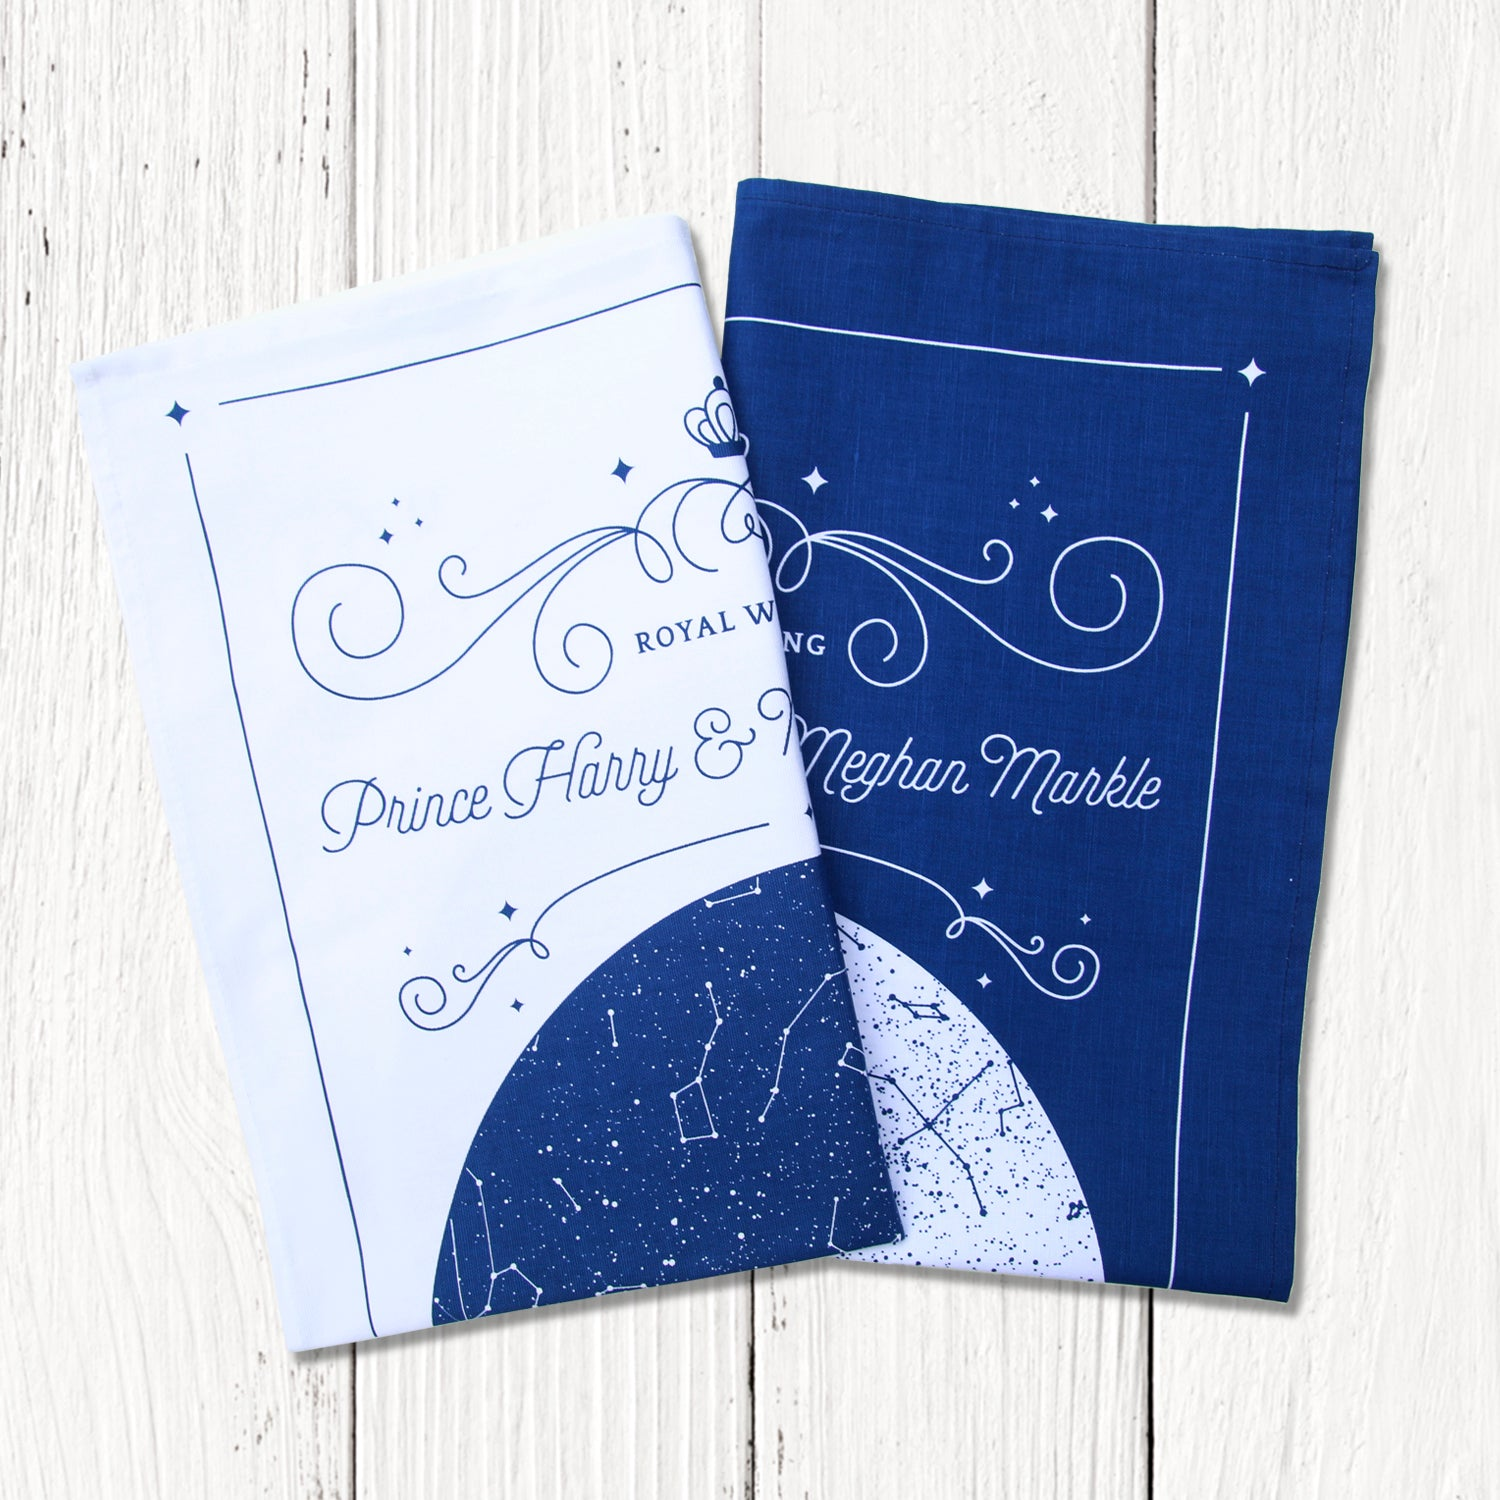 set of 2 co-ordinated white and blue Royal Wedding Tea towels